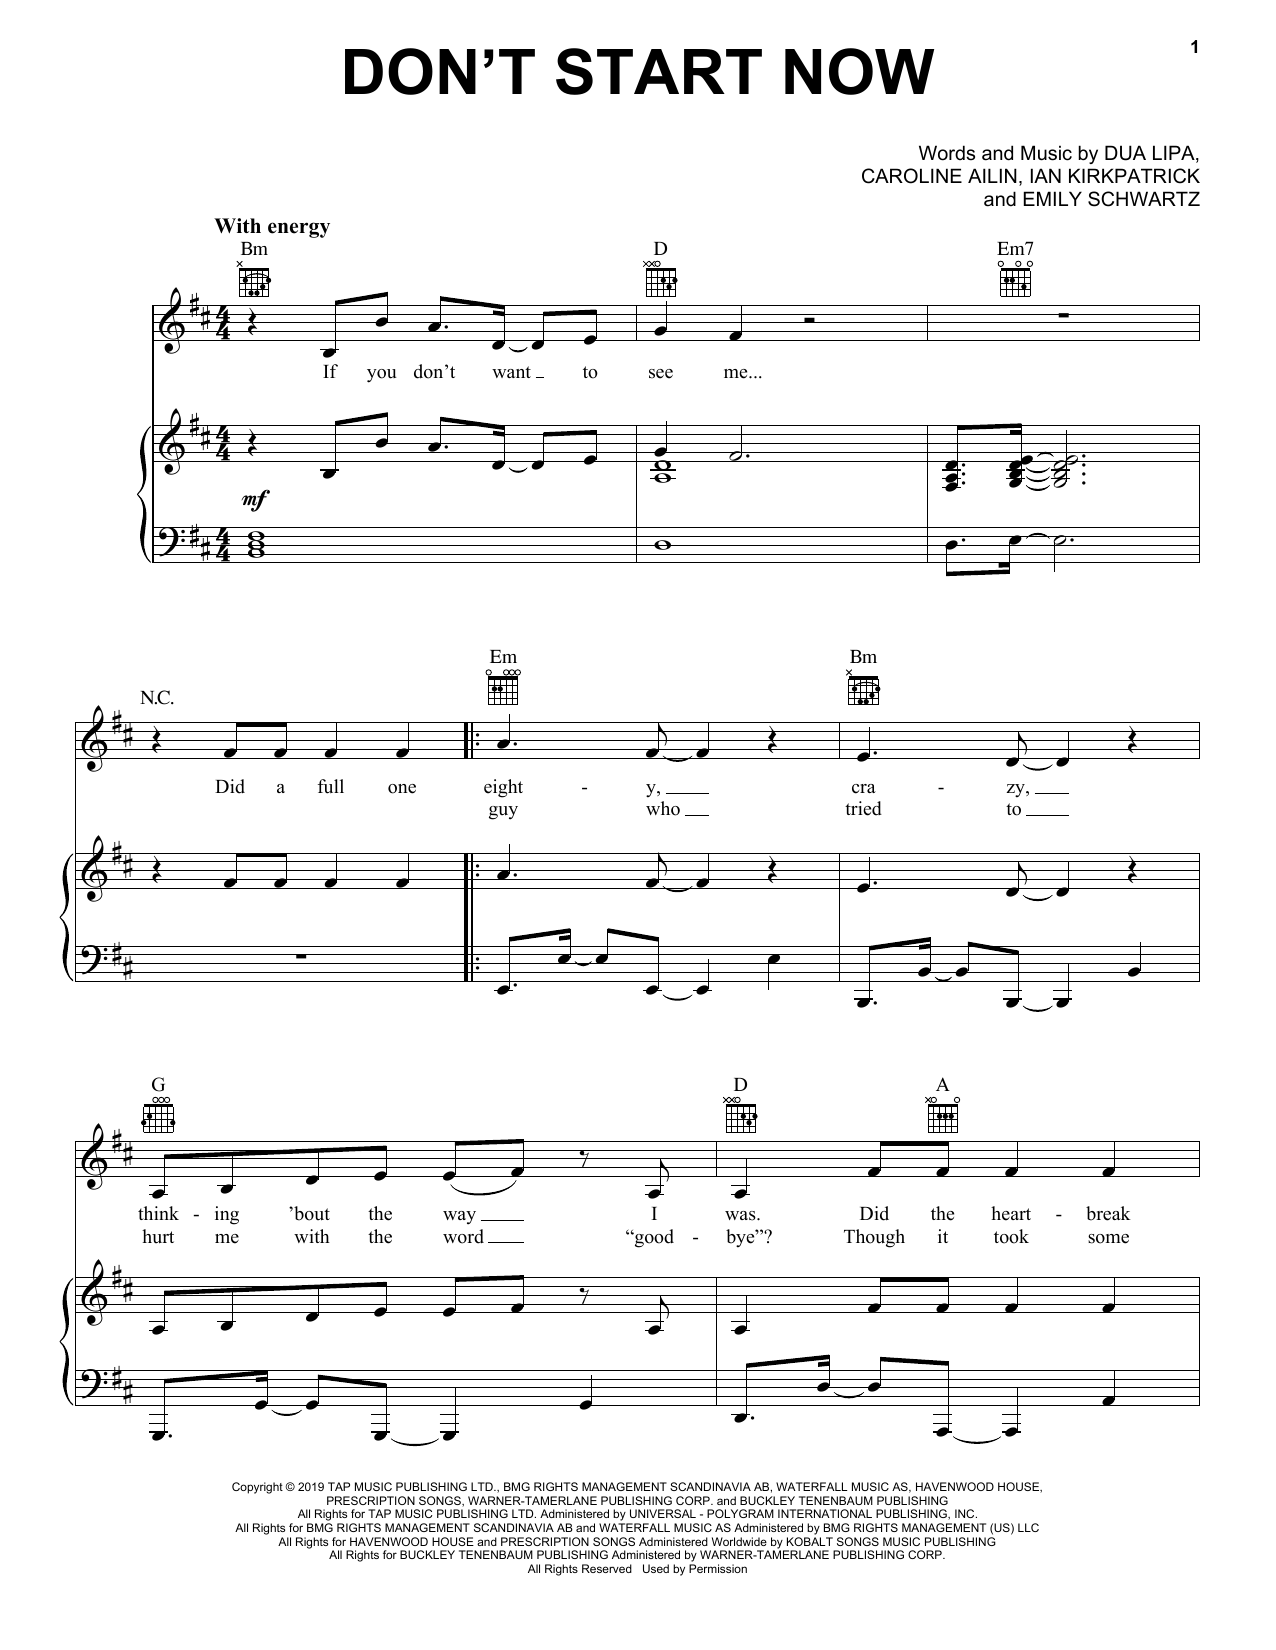 Dua Lipa Don't Start Now sheet music notes and chords